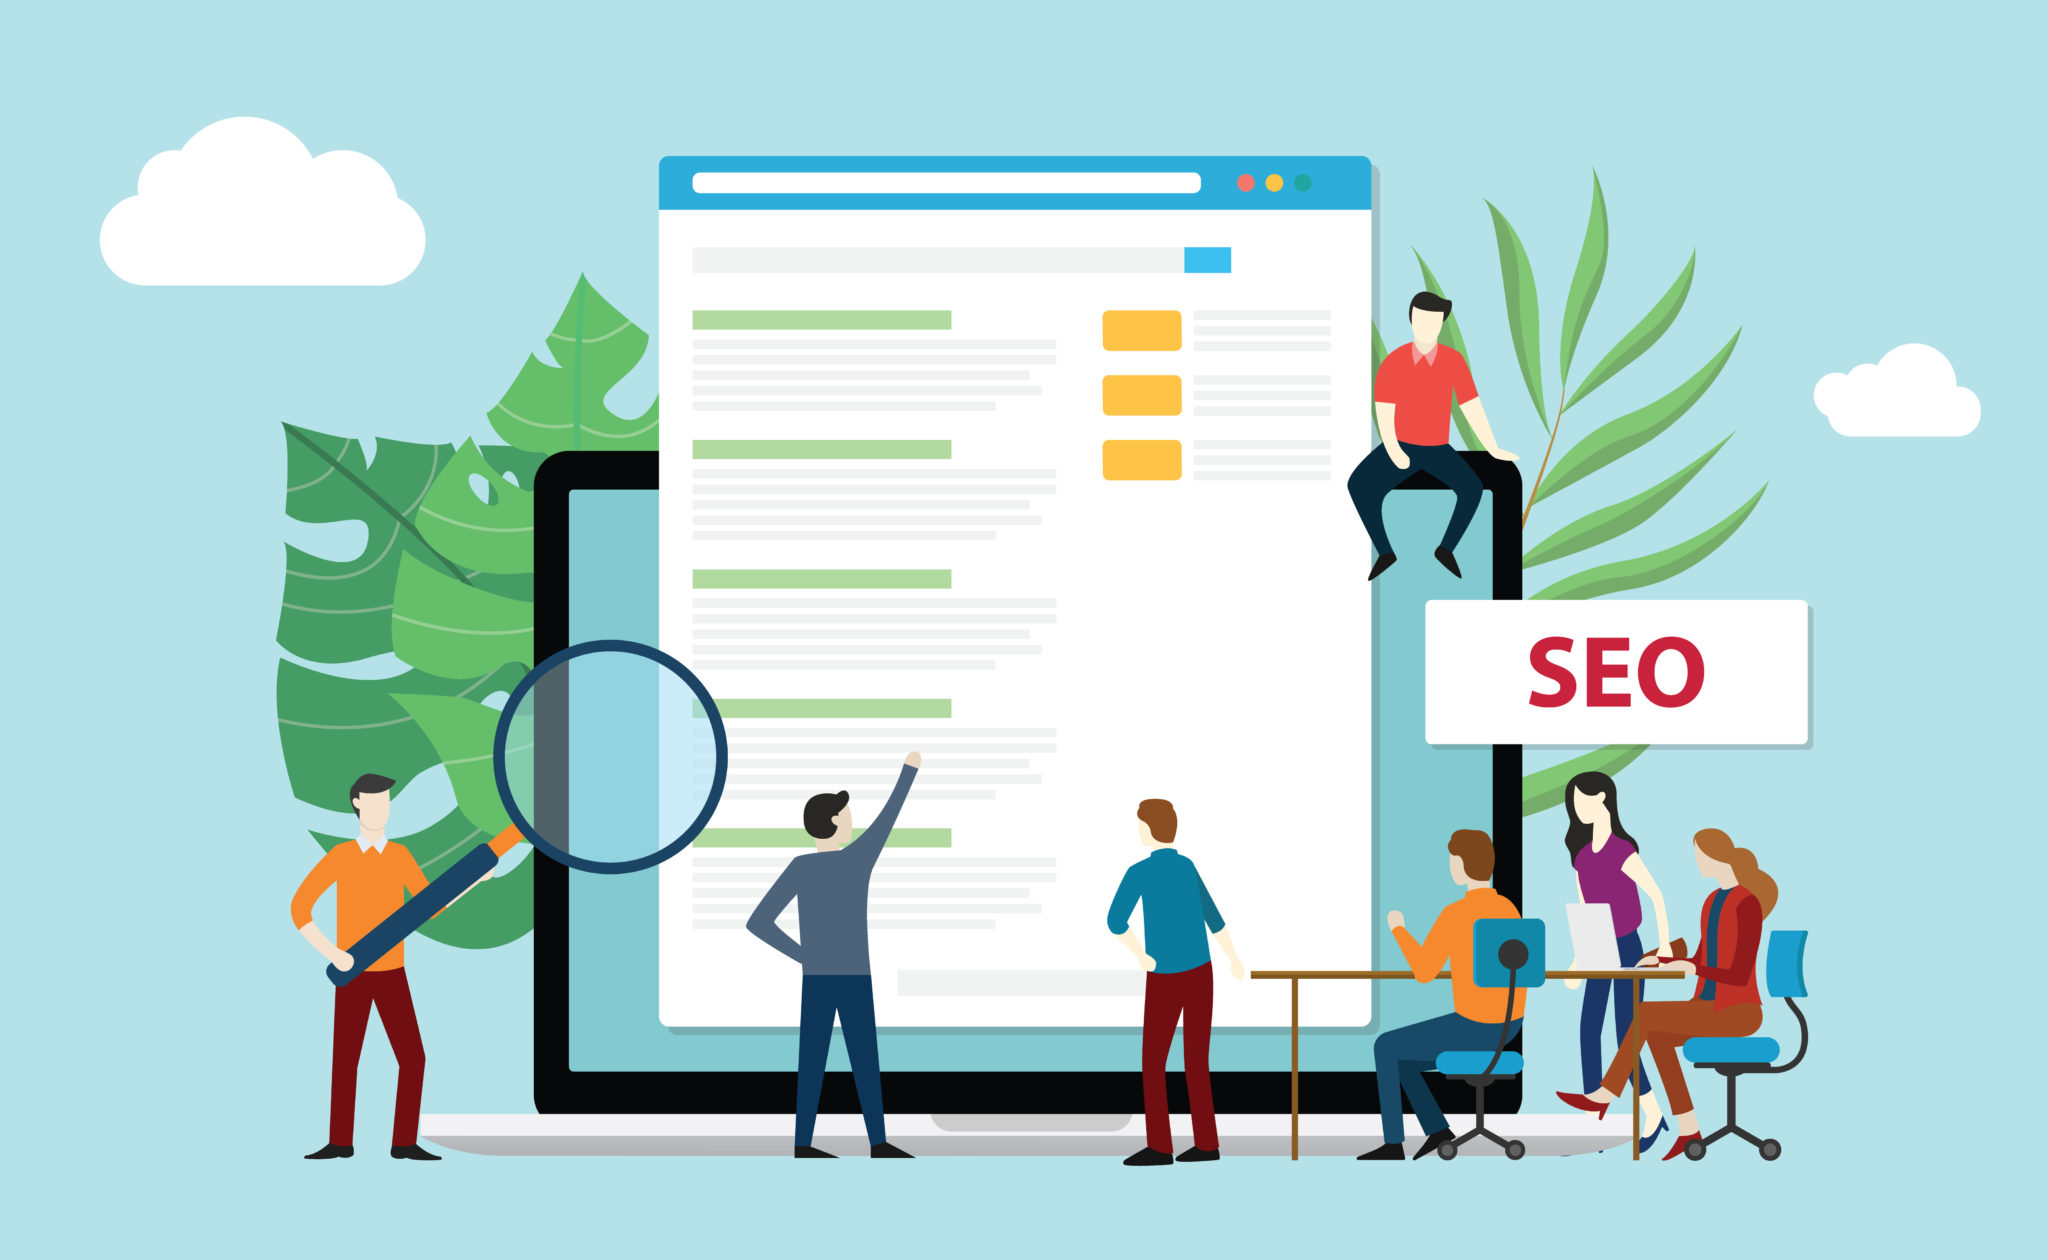 BEST 4 TIPS TO GET FEATURED IN GOOGLE SNIPPETS 2019